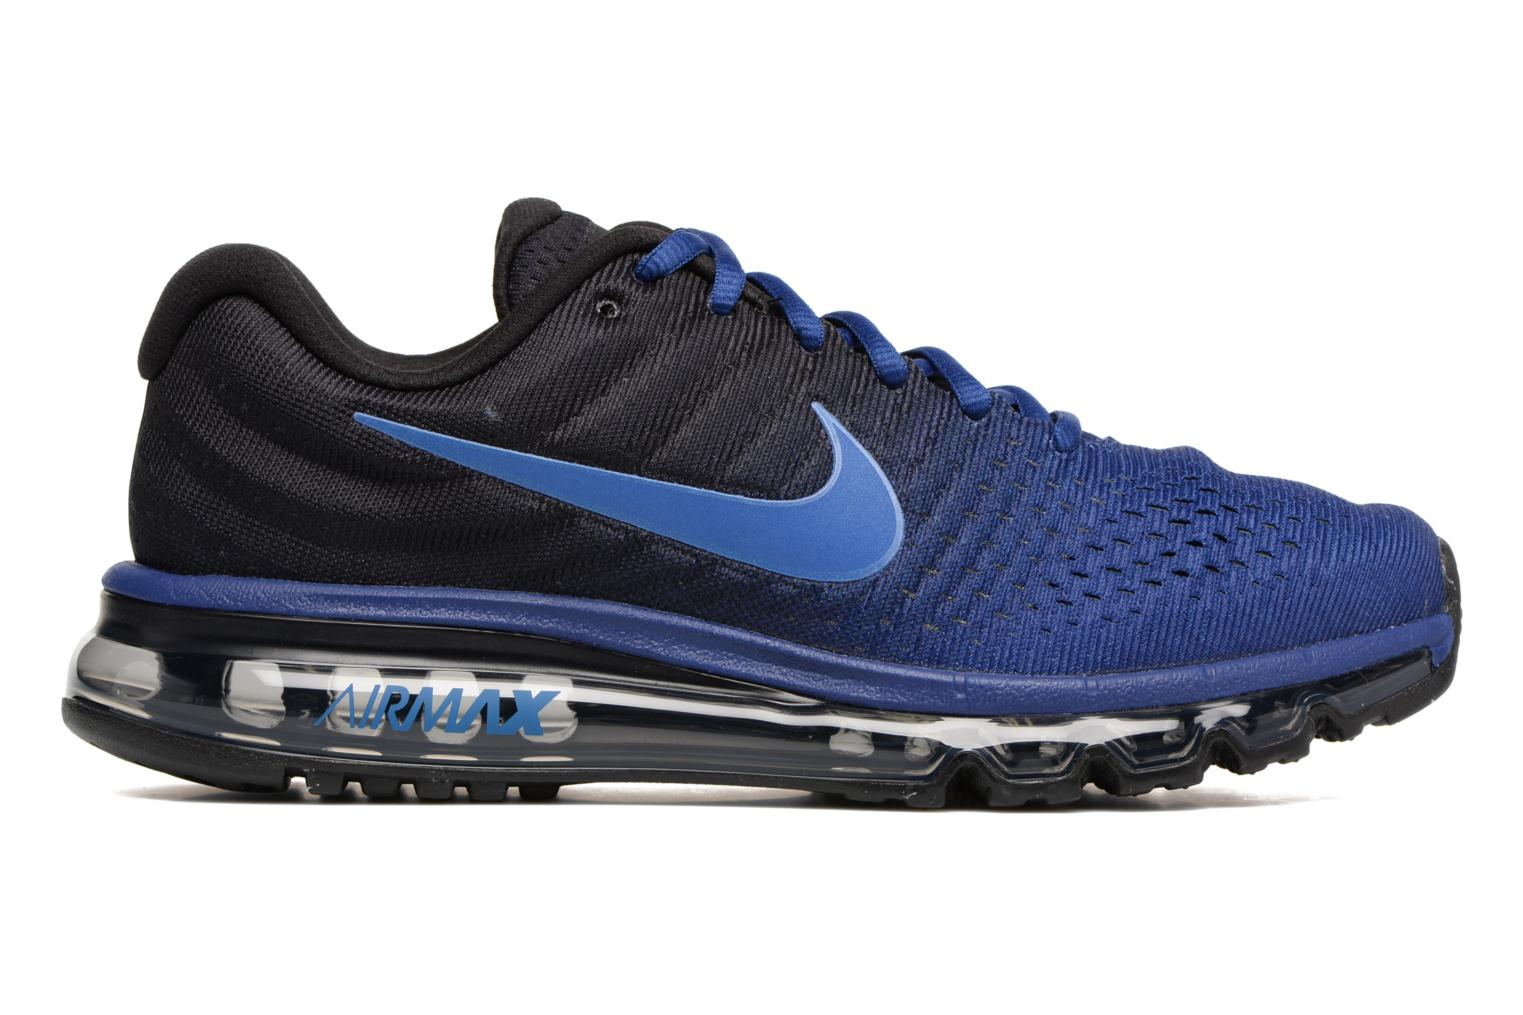 Nike Air Max 2017 Deep Royal Blue/Hyper Cobalt-Black